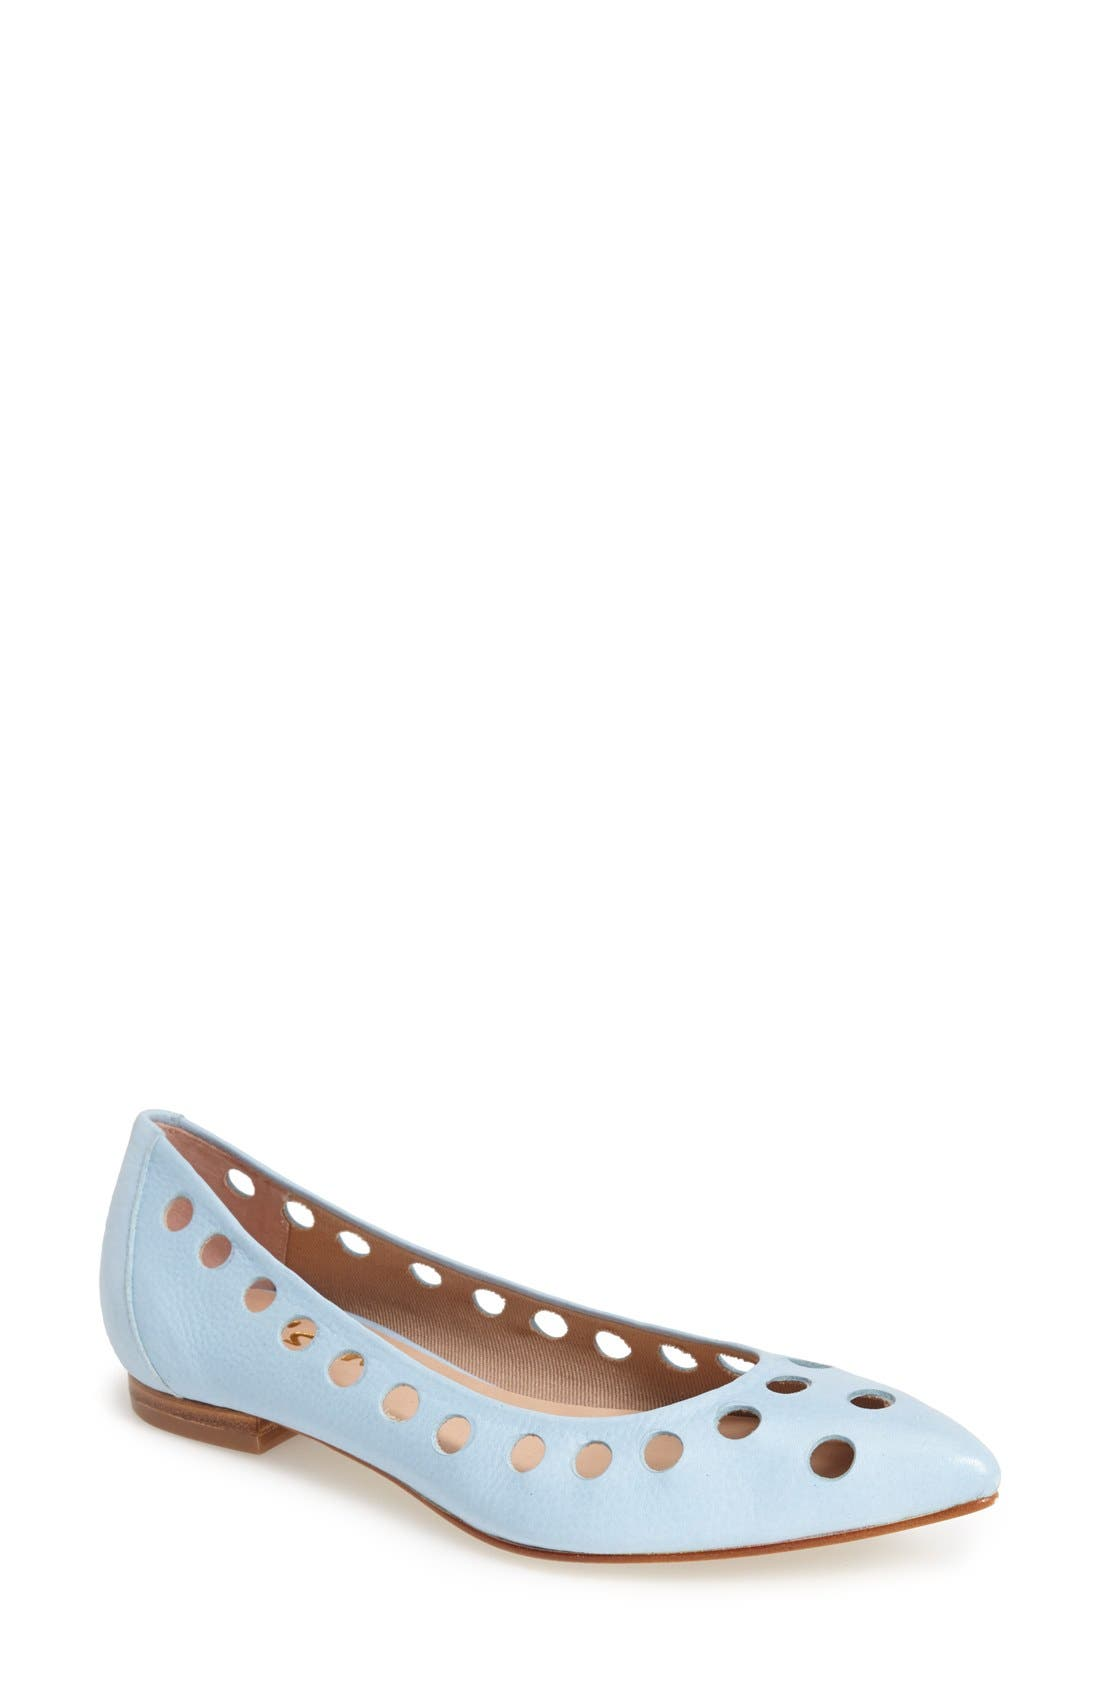 Main Image - French Sole 'Naught' Laser Cut Ballet Flats (Women)